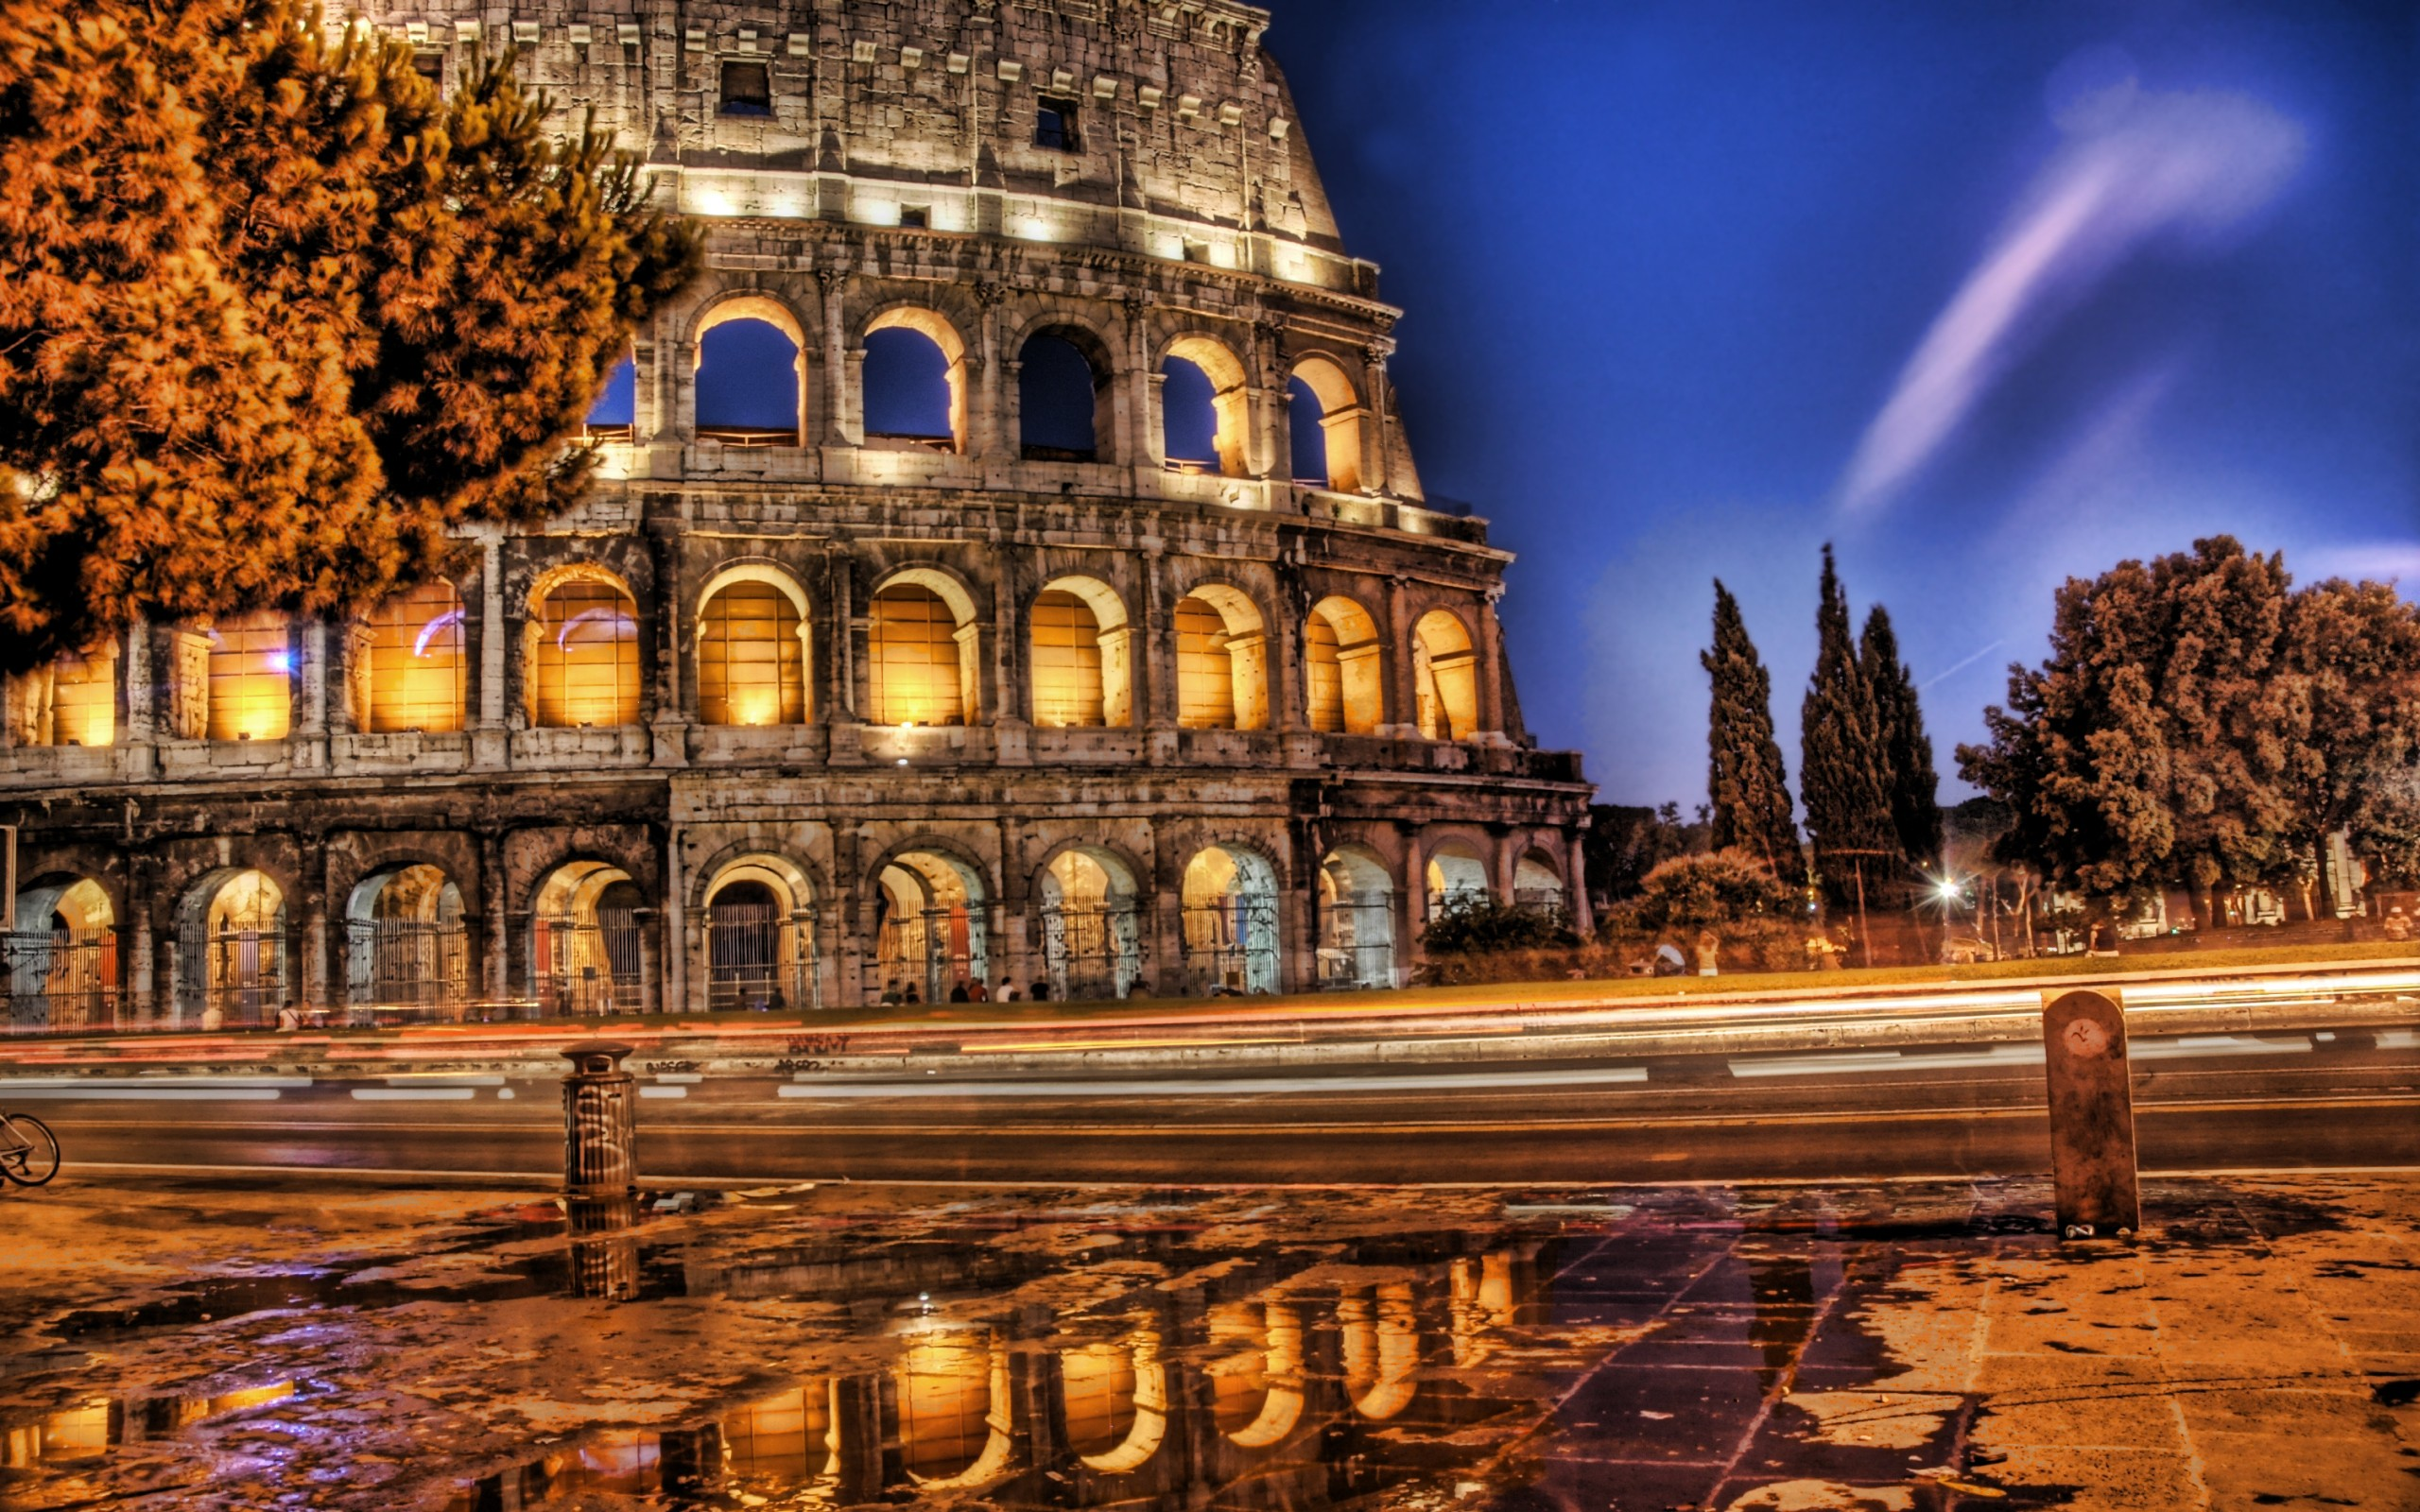 2560x1600 Colosseum in HDR desktop PC and Mac wallpaper HD Wide Wallpaper for Widescreen